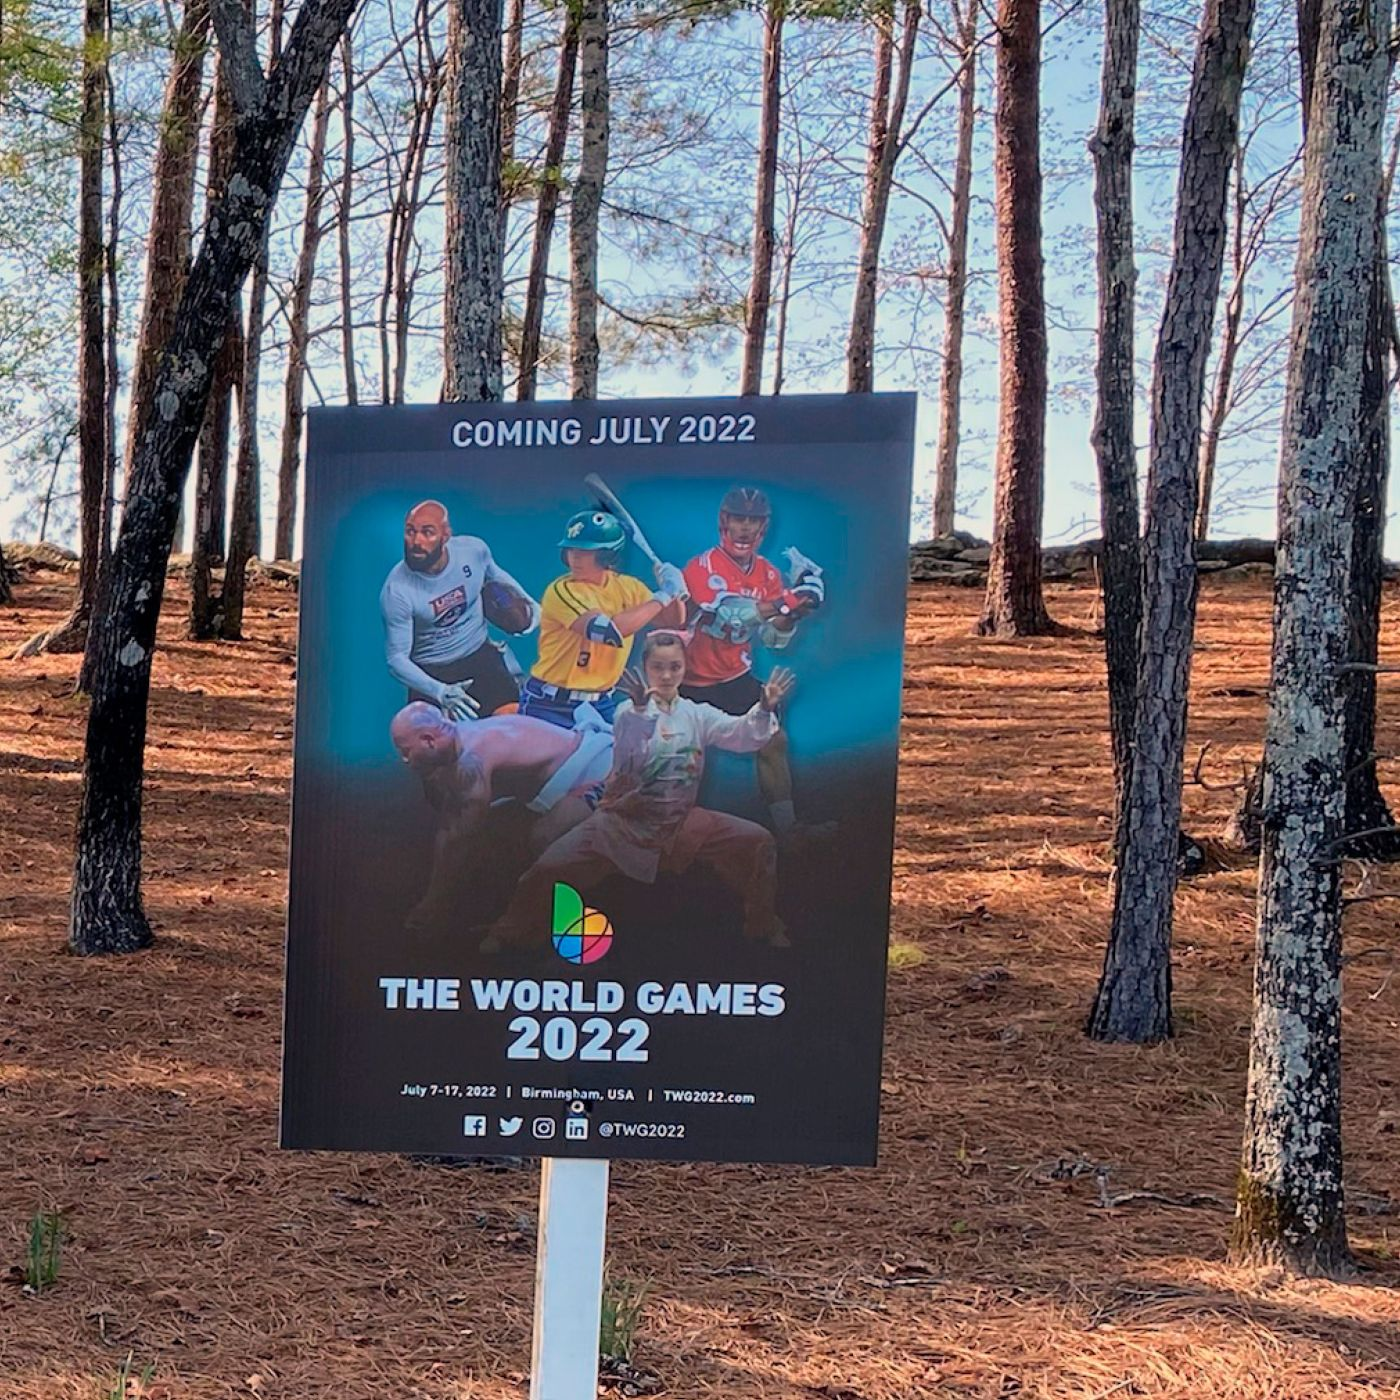 Sign of the world games in a field